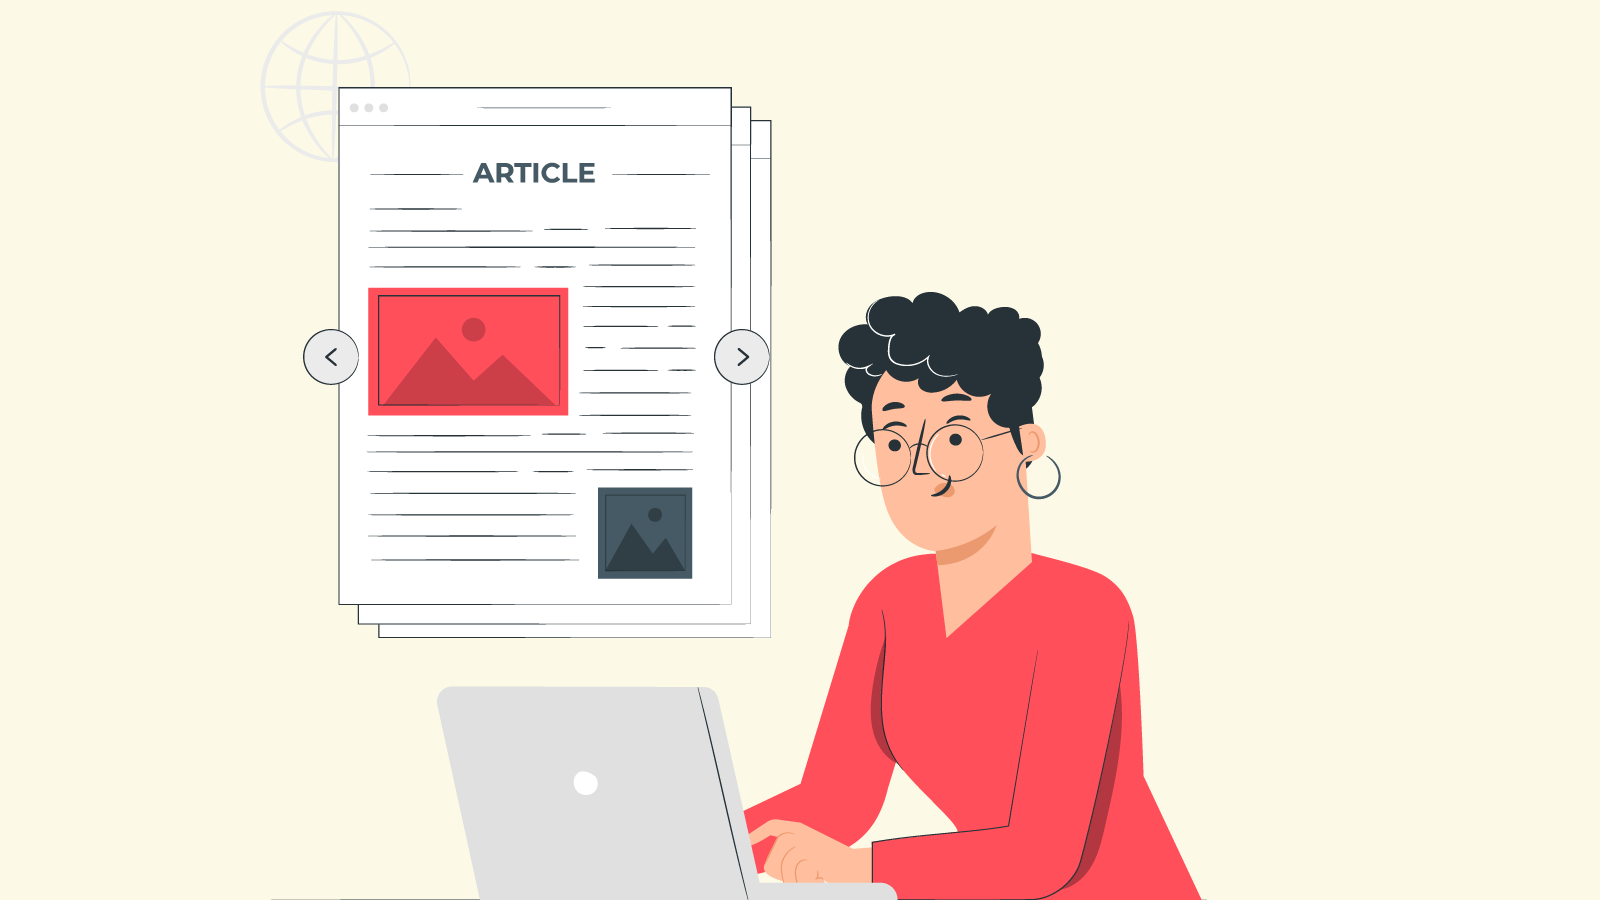 Four types of articles available